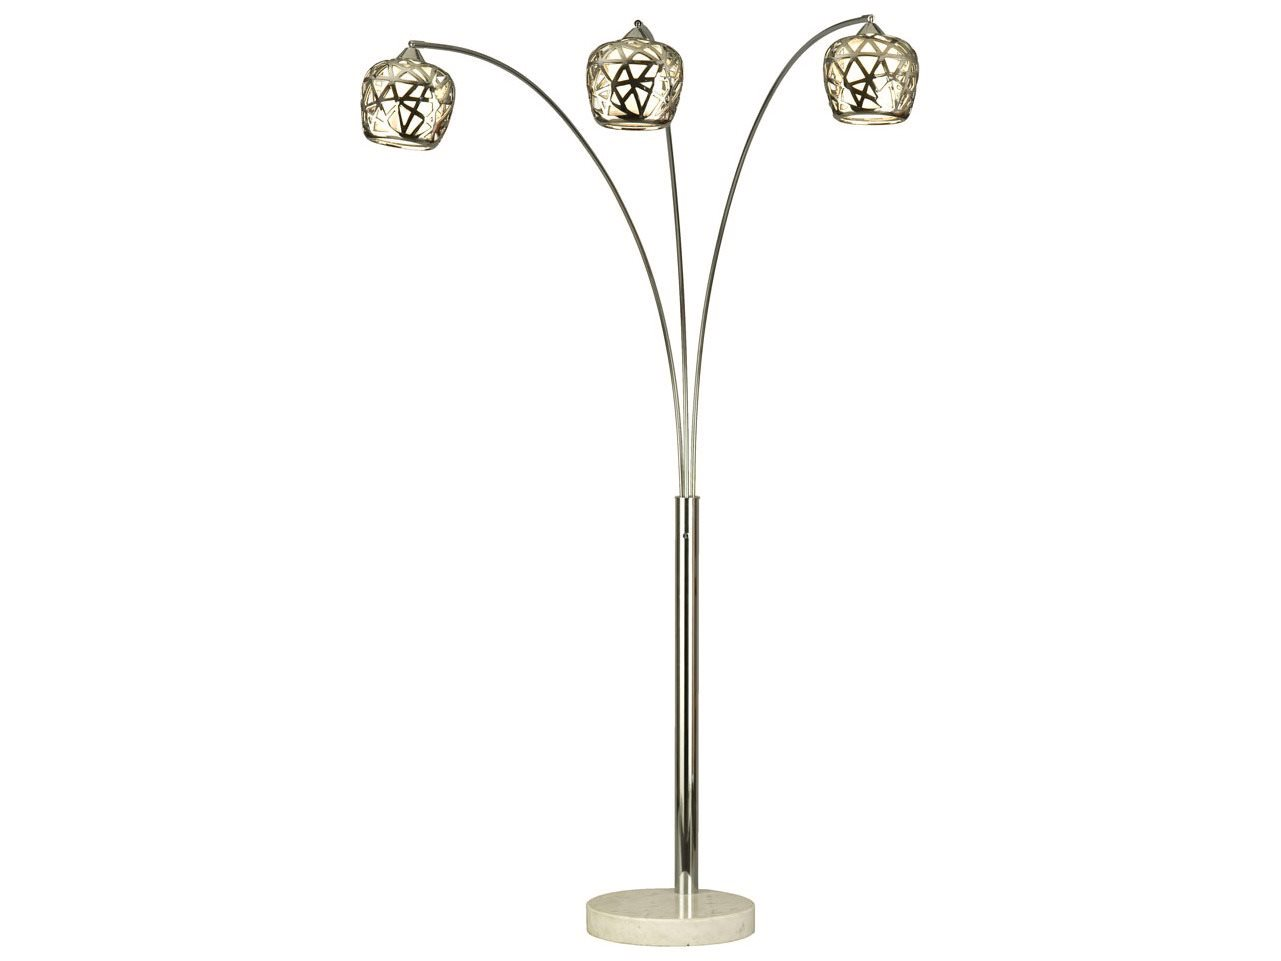 Birds nest white marble arc contemporary floor lamp 12605 for White floor lamp with birds